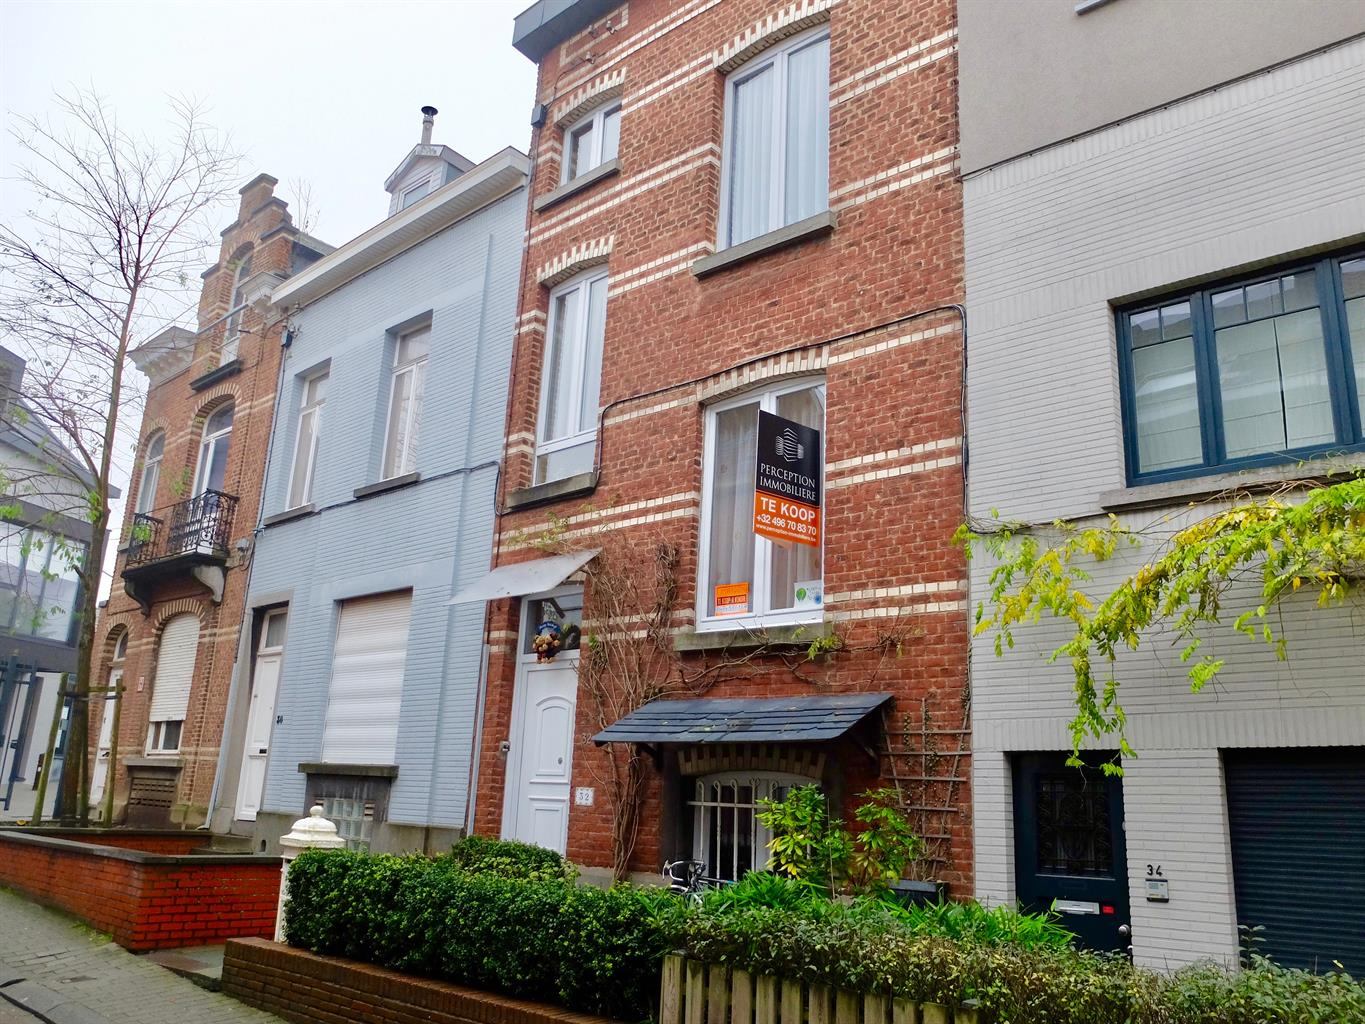 House - Berchem-Sainte-Agathe - #3257864-0